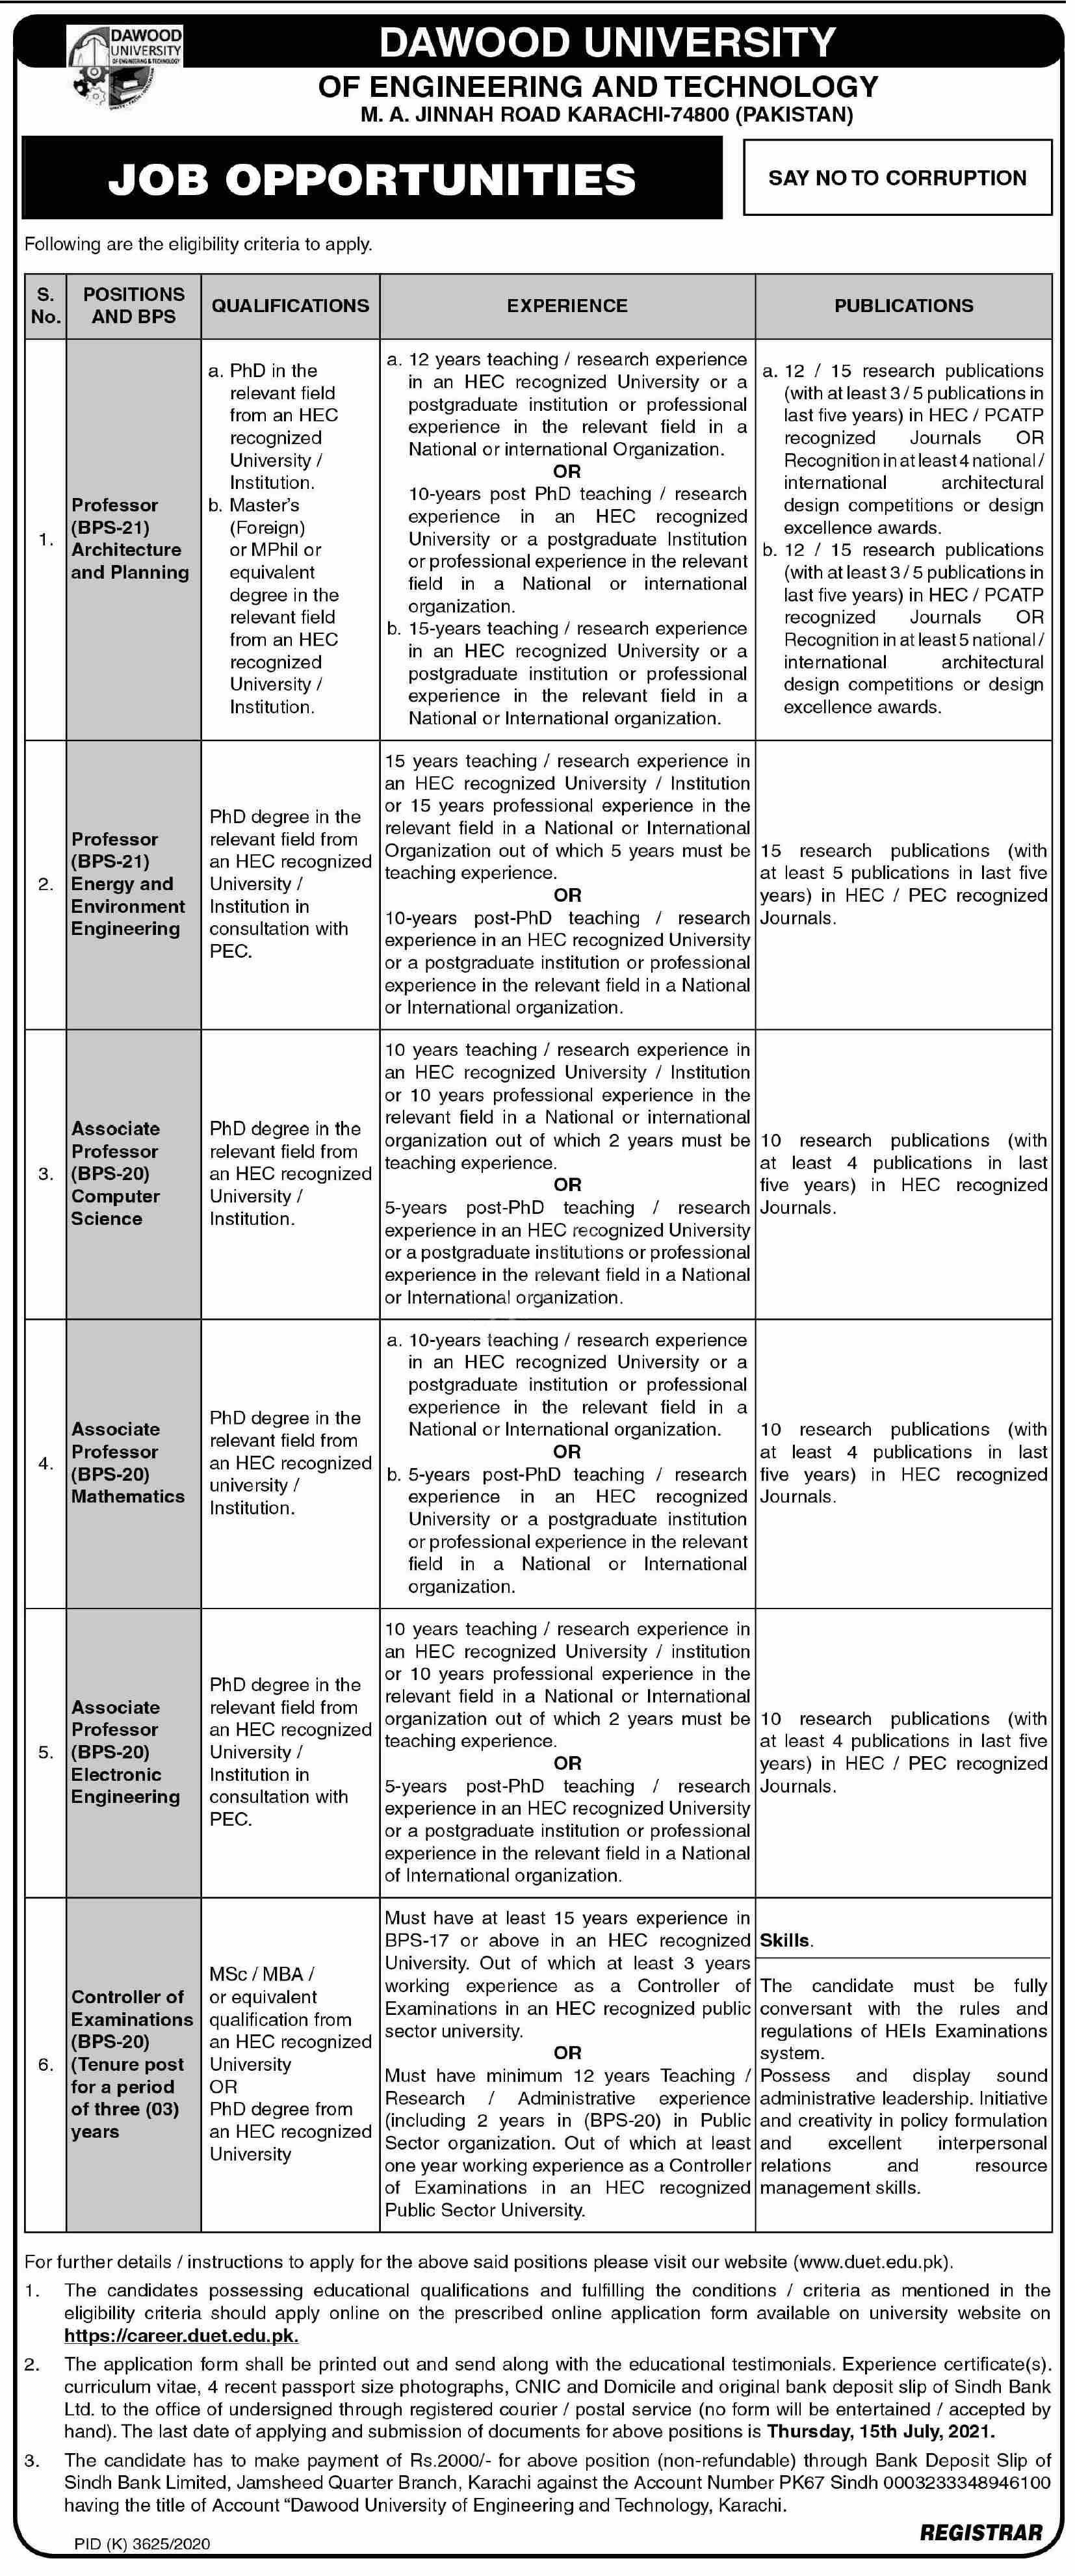 Dawood University Of Engineering and Technology DUET Jobs 2021